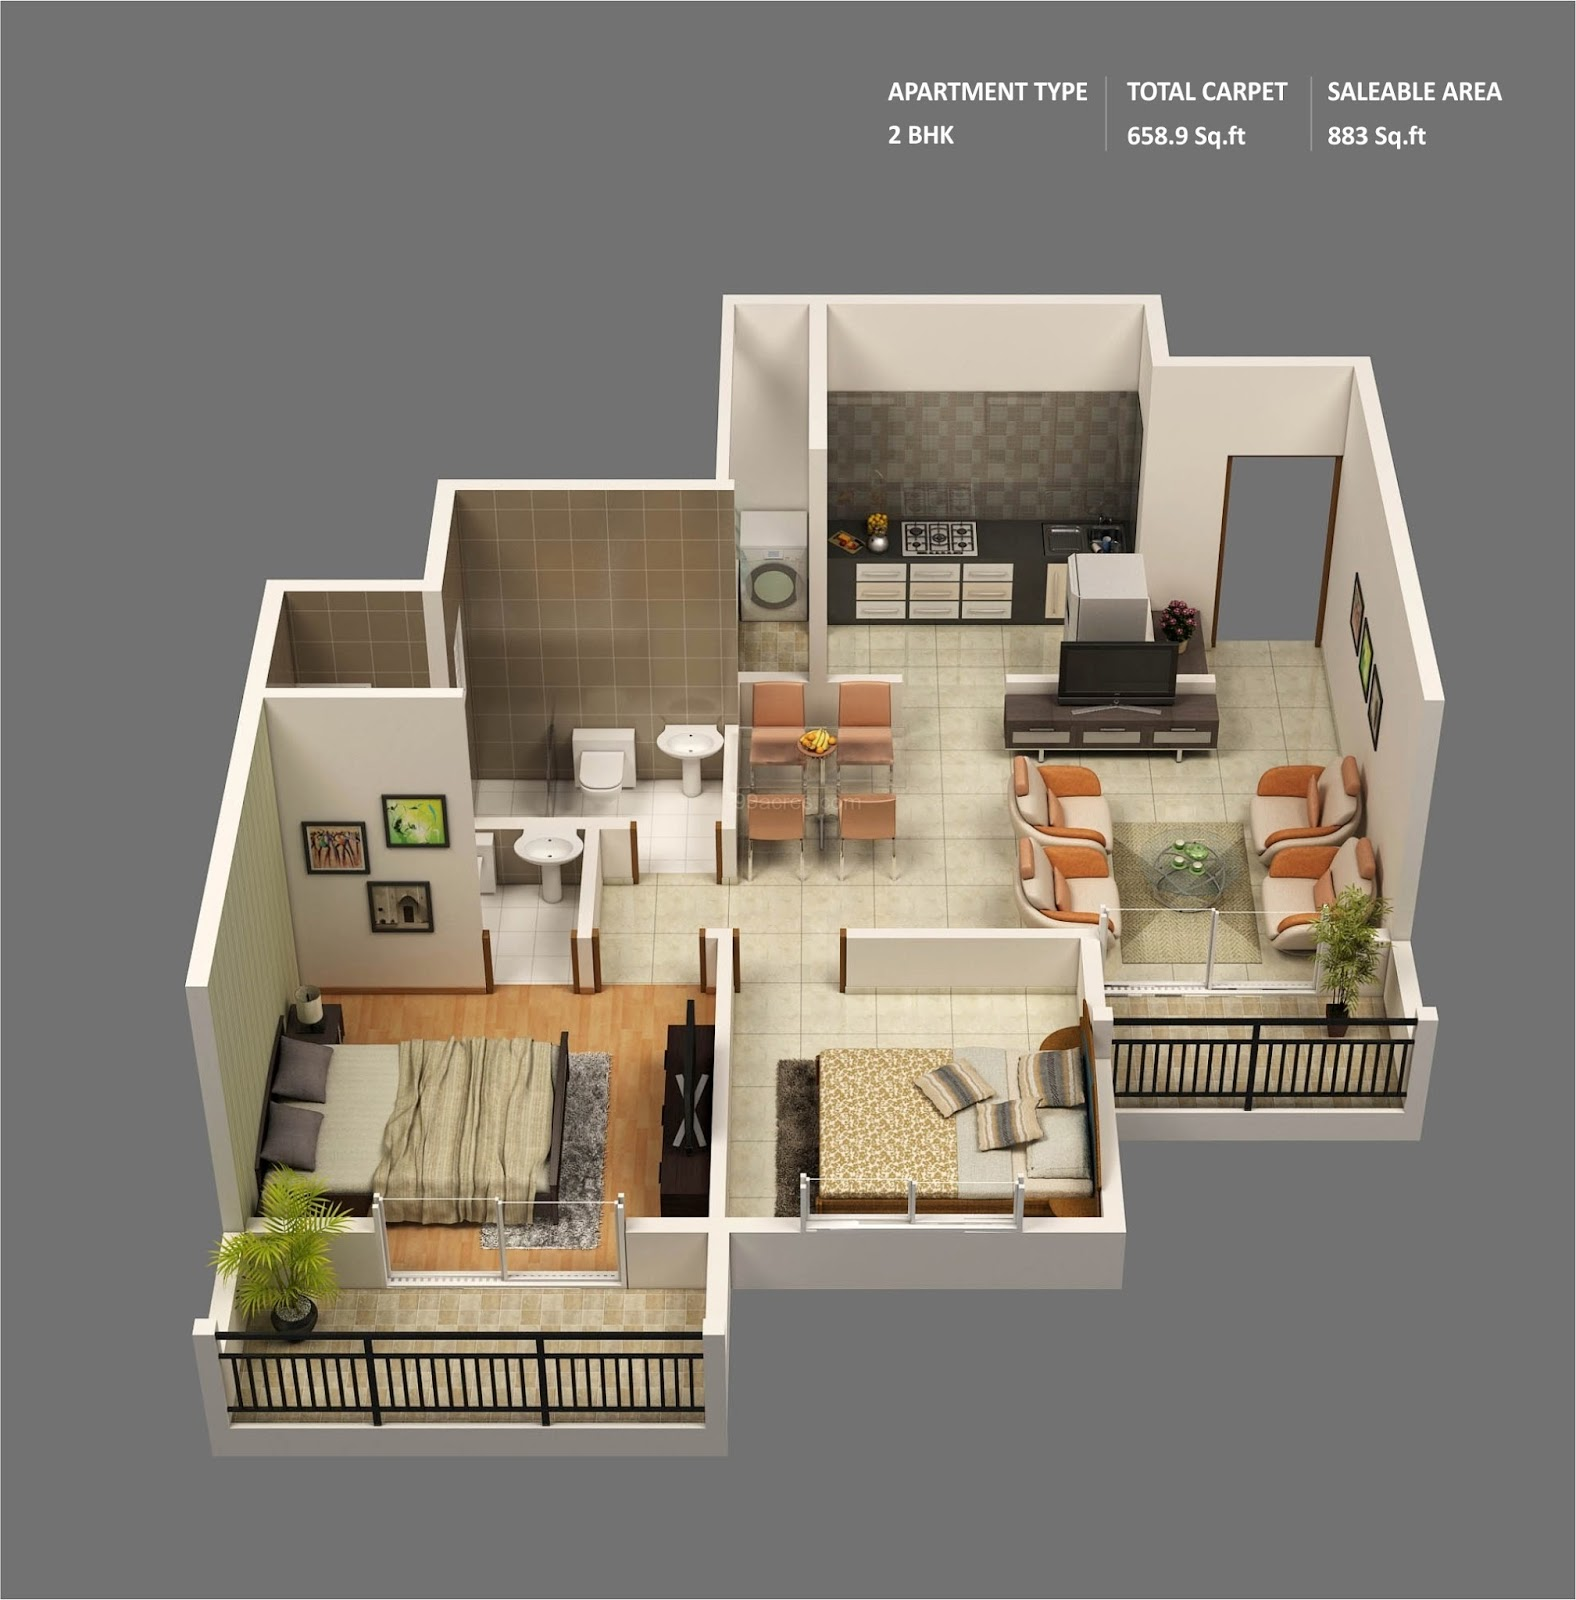 rishabh kushwaha - Small Home 2